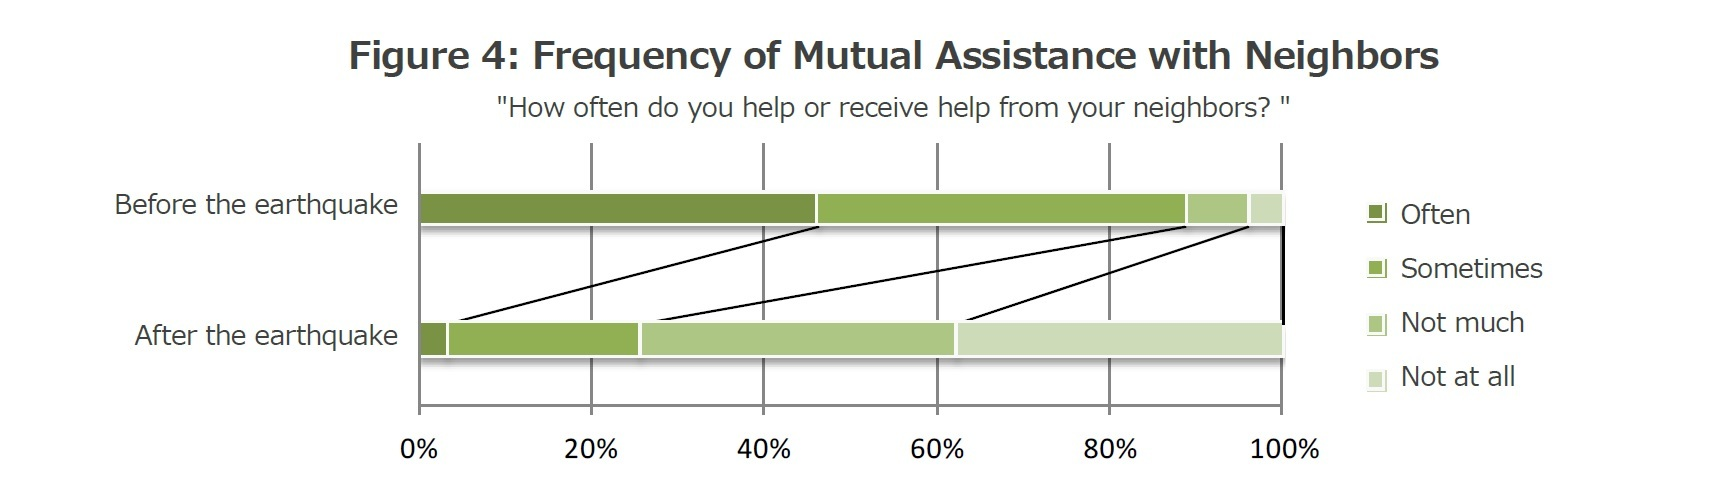 Figure 4: Frequency of Mutual Assistance with Neighbors